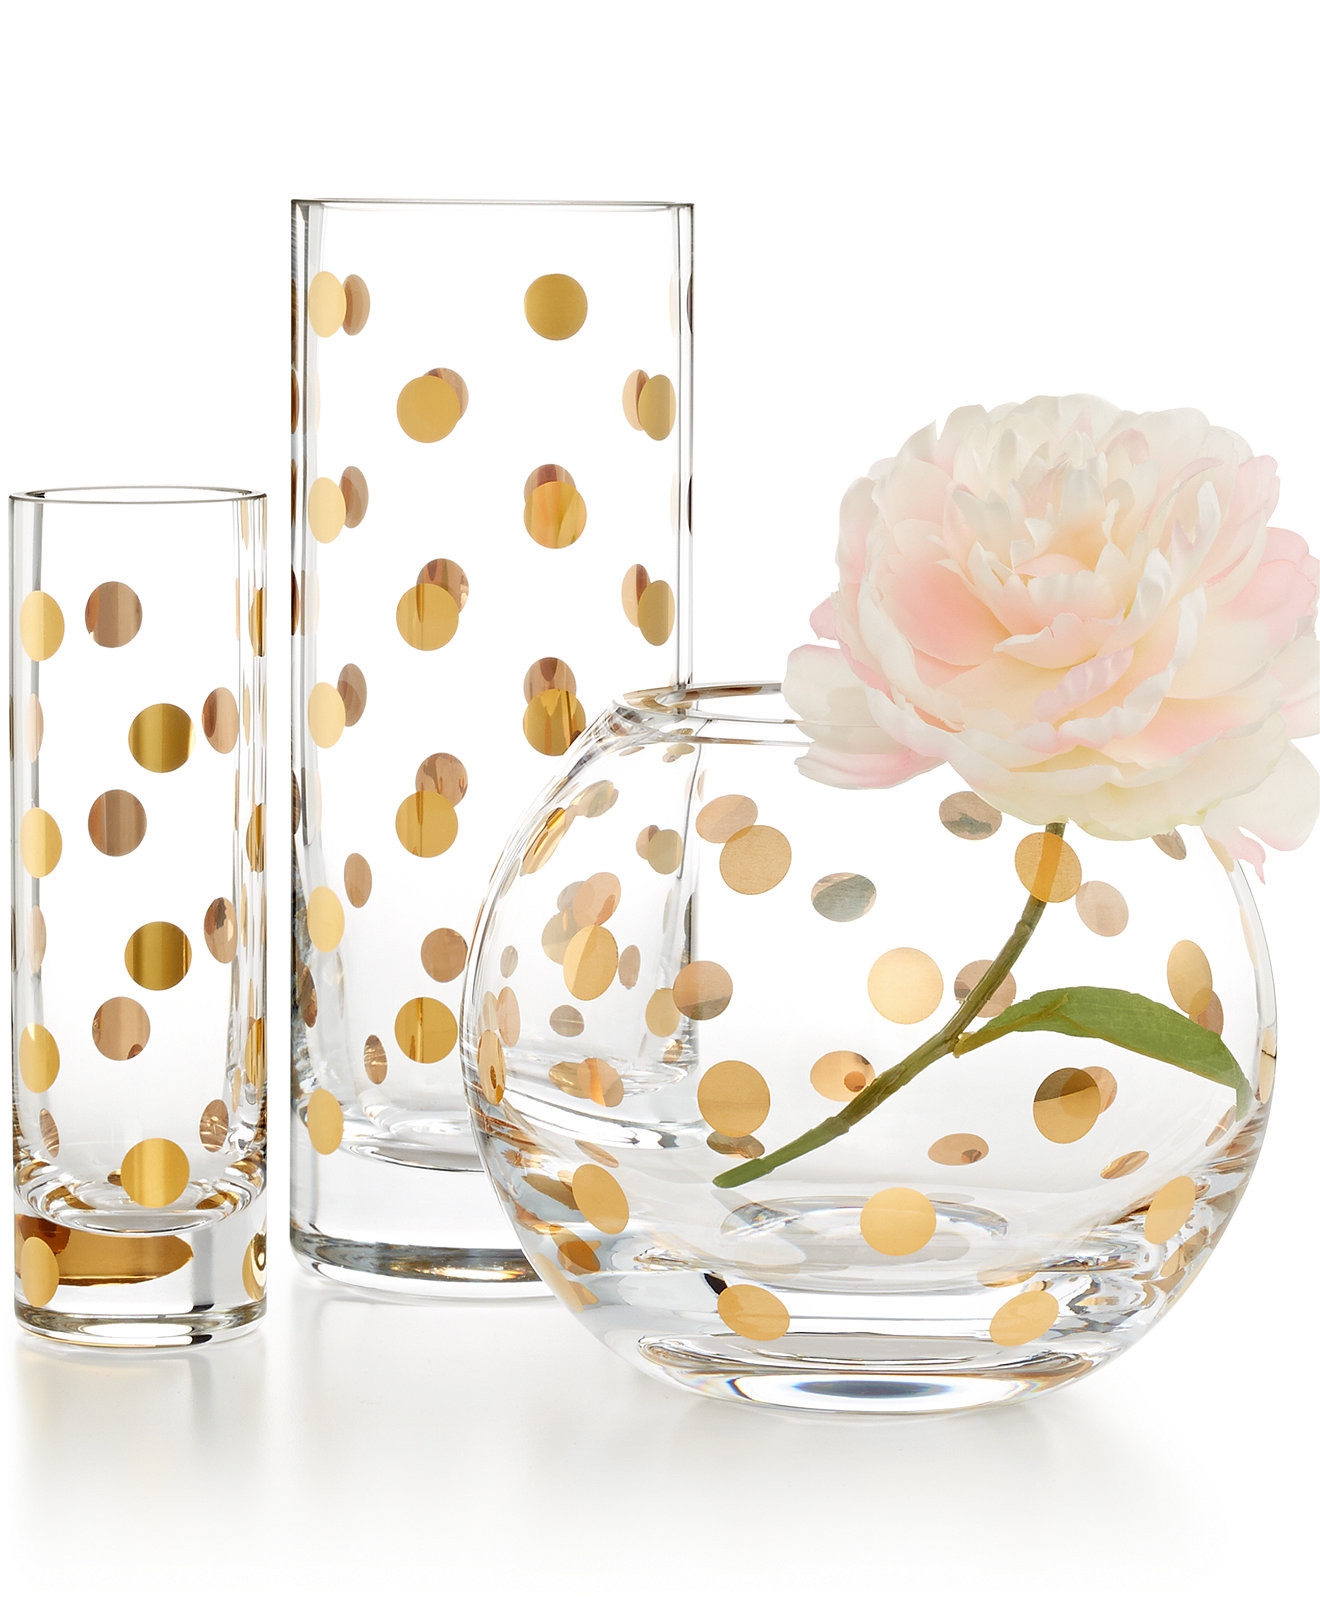 29 Perfect Kate Spade Pearl Place Vase 2021 free download kate spade pearl place vase of vases designs kate spade vases kate spade at belk kate spade intended for glasses kate spade vases simple white orange flower leaves green new york formidable